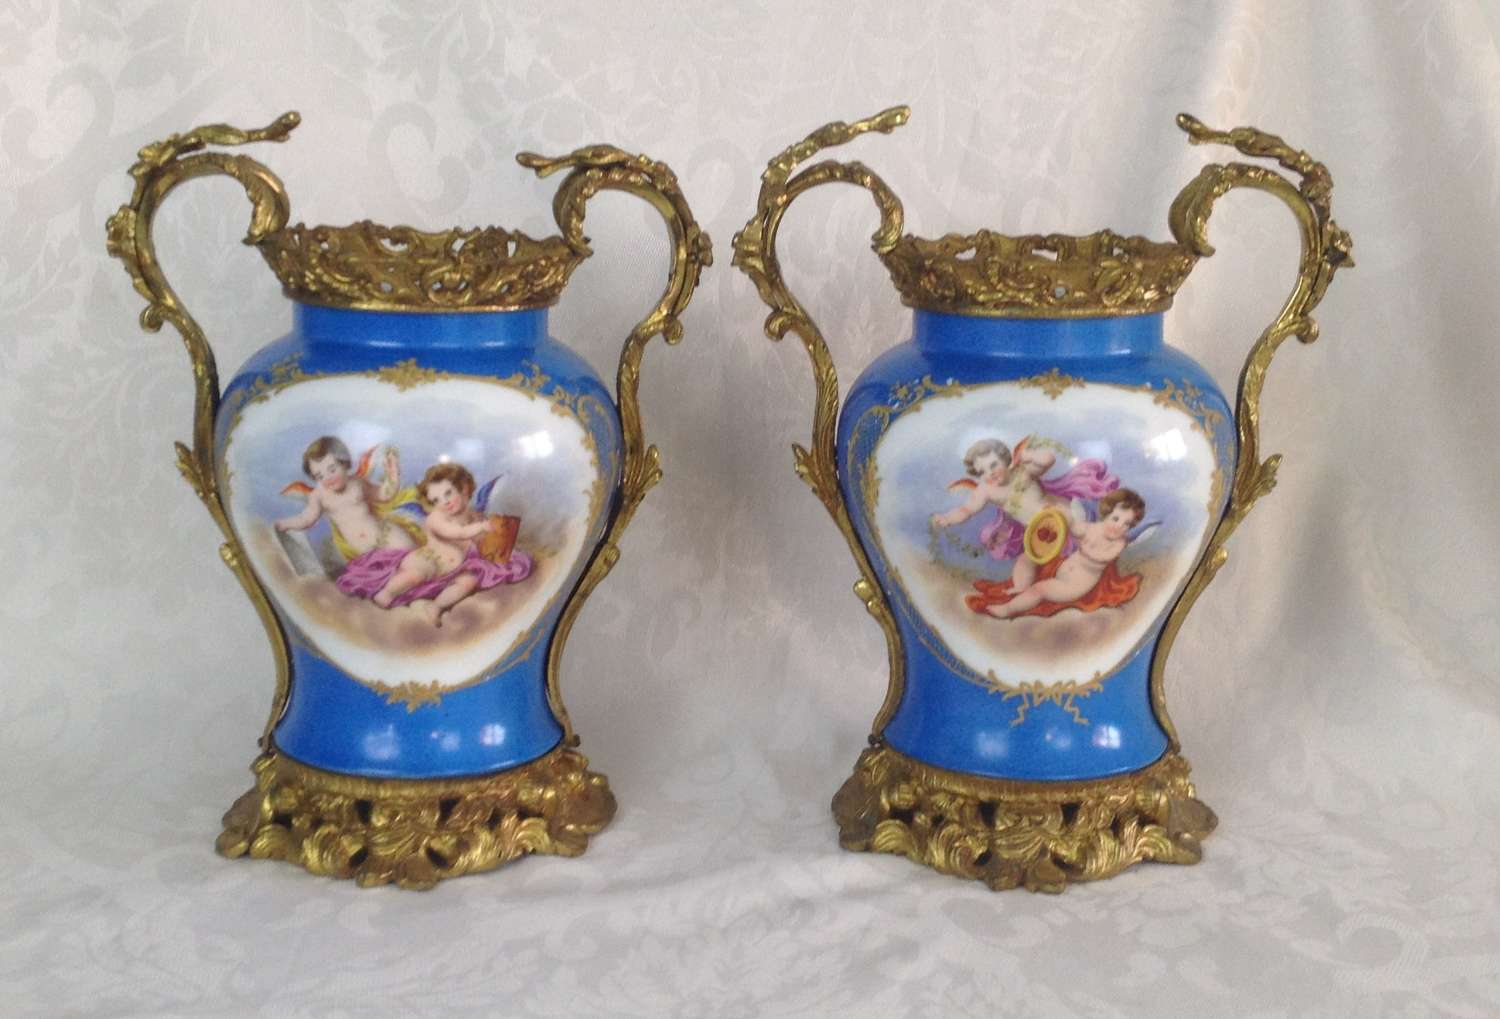 Pair Large French Sevres Style Ormolu Mounted Porcelain Vases